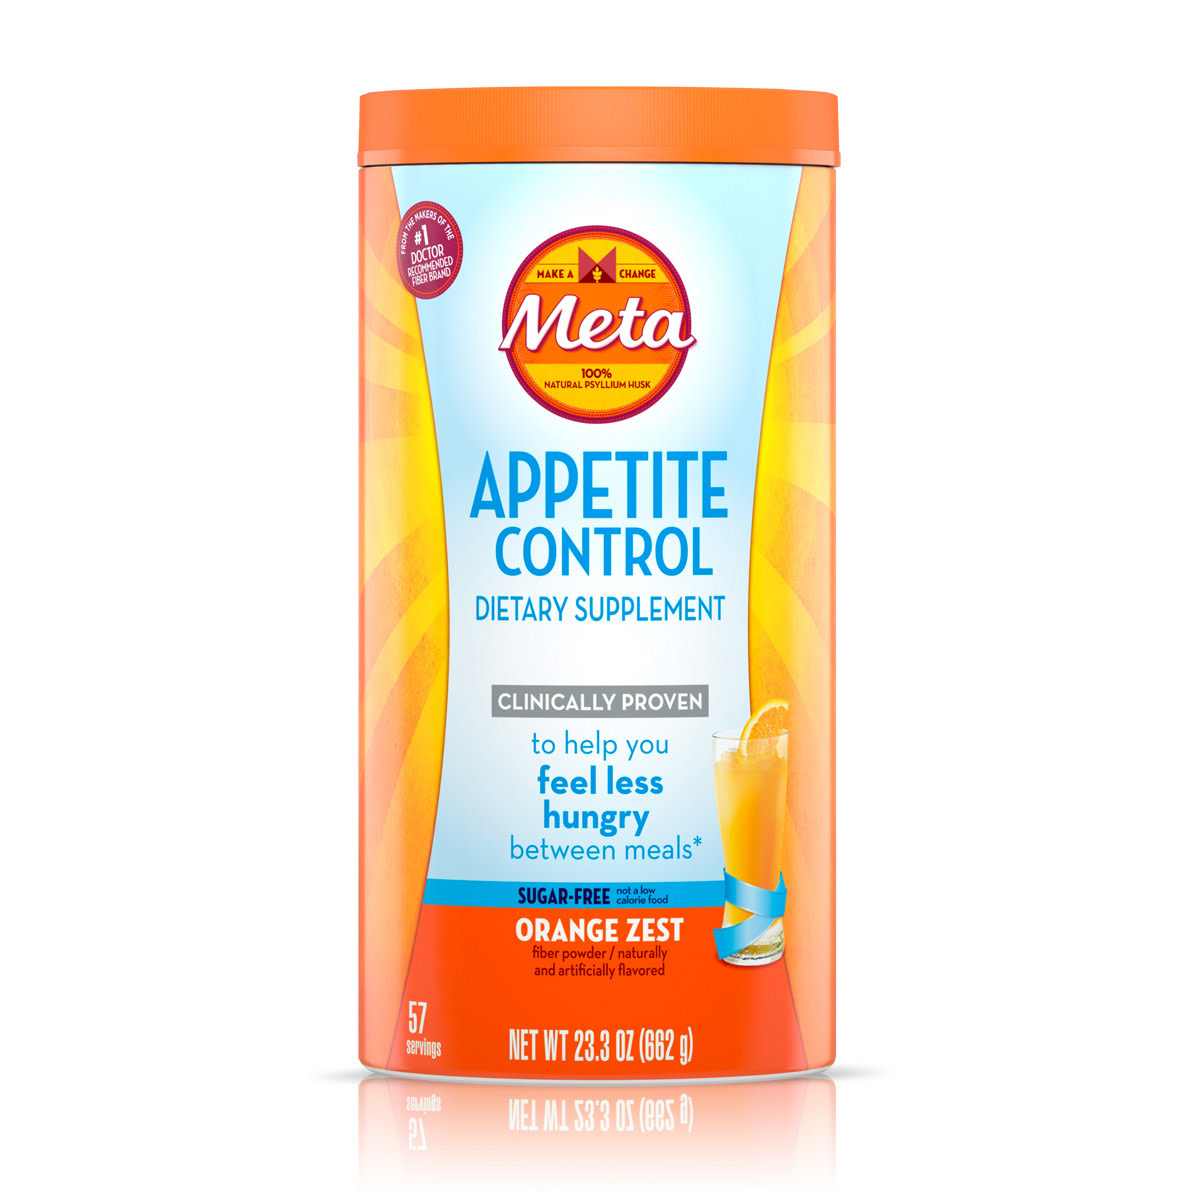 META APPETITE CONTROL FIBER SUPPLEMENT SUGAR-FREE ORANGE ZEST